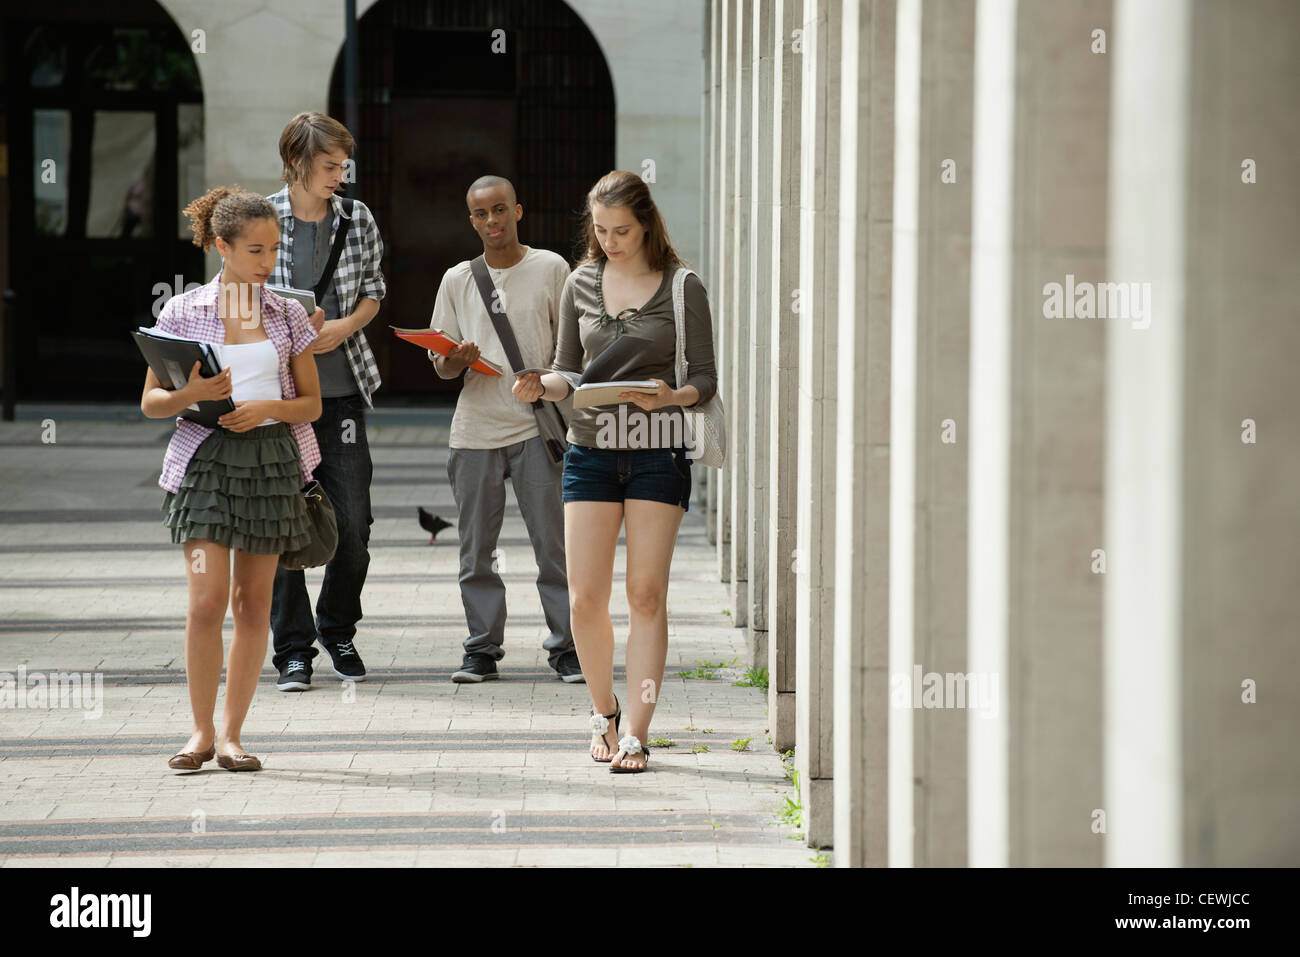 University students walking on campus discussing schoolwork - Stock Image